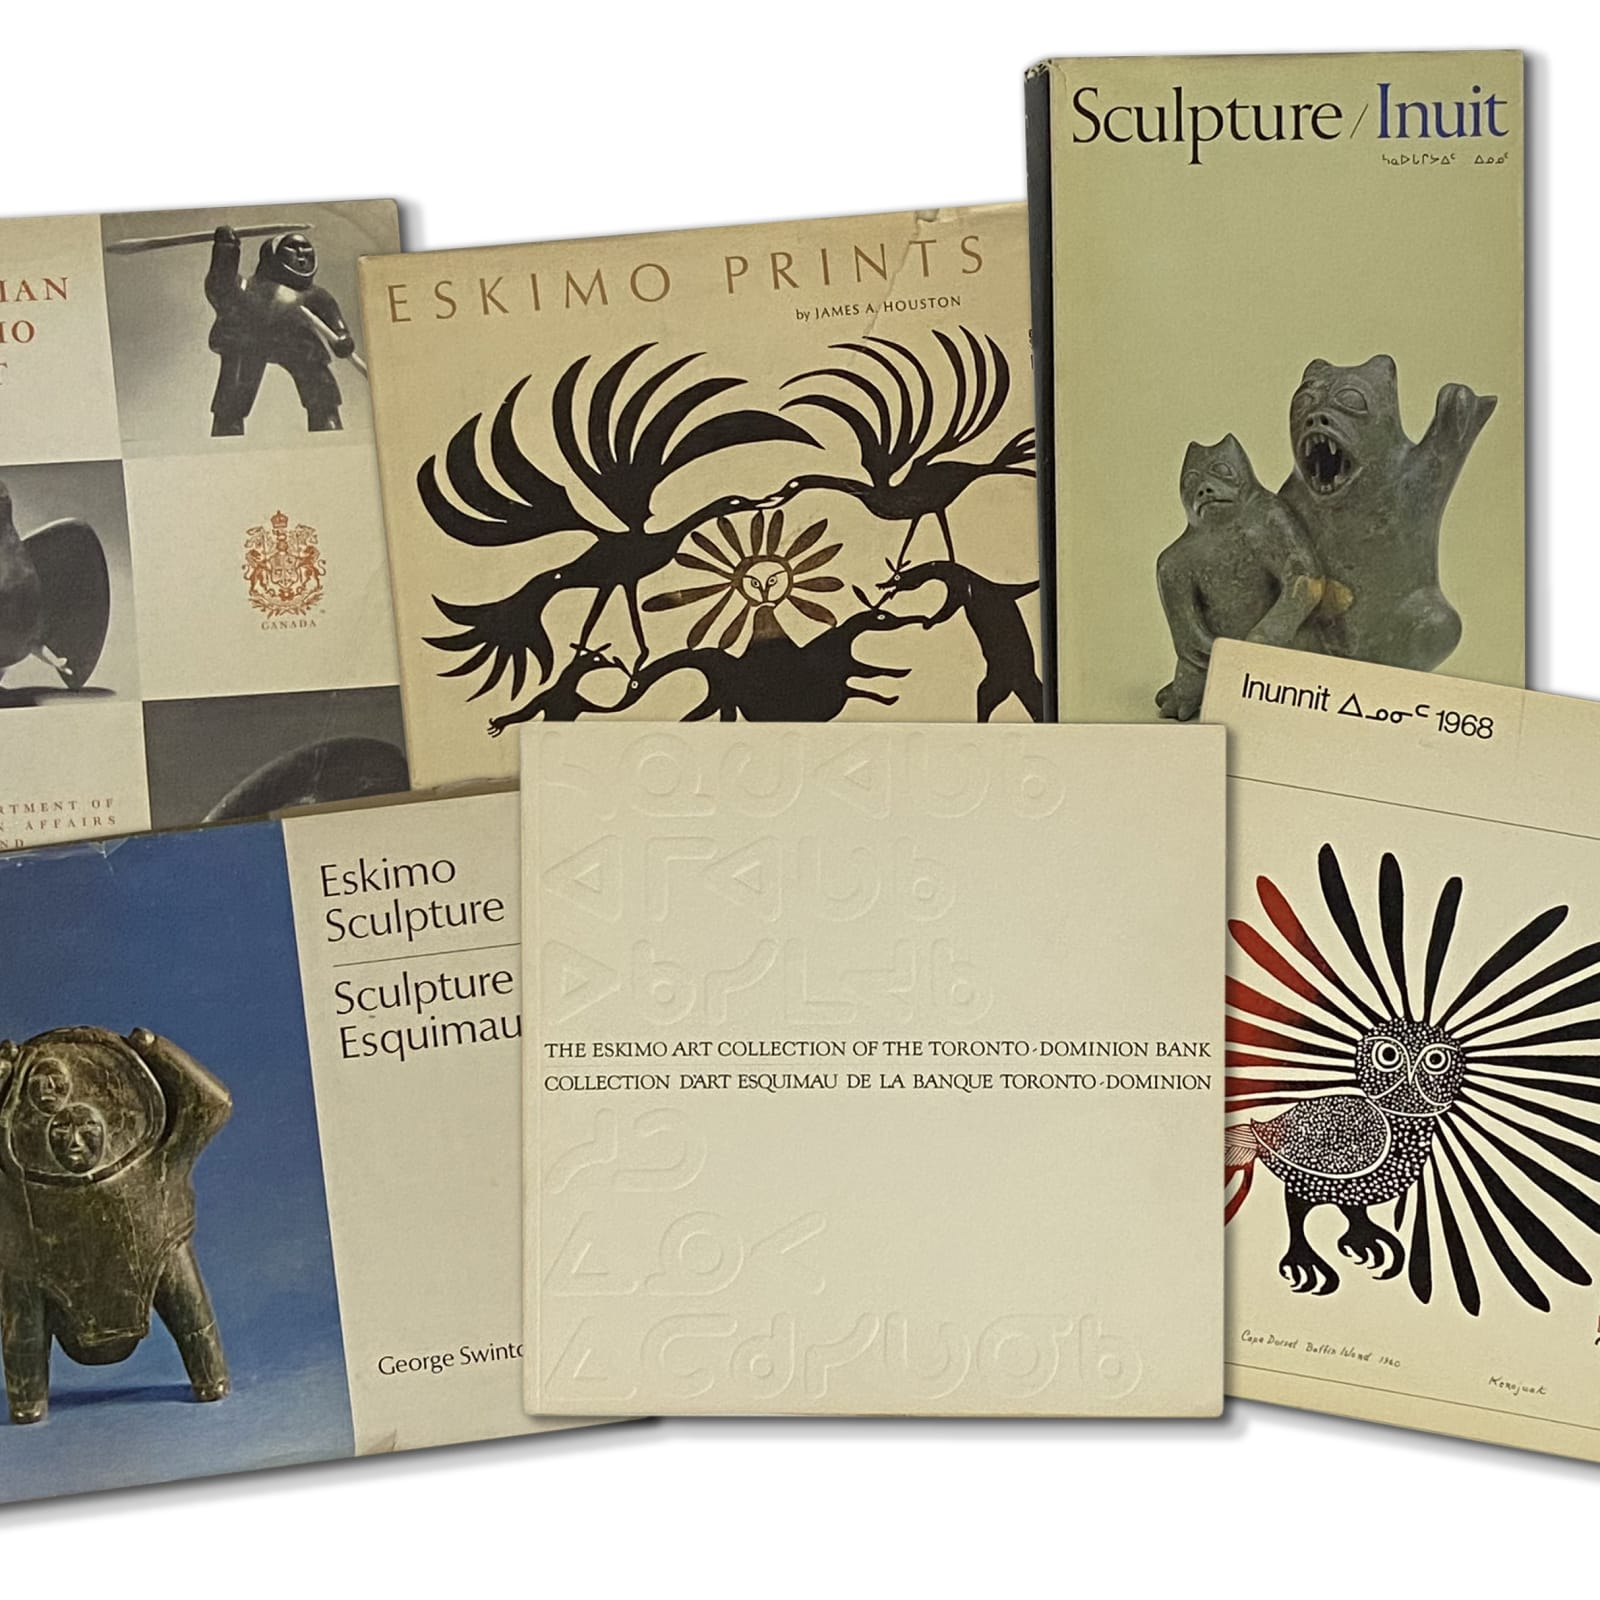 Lot 84  Quantity of Inuit Art Publications  Estimate: $300 ⁠— $500  PRICE REALIZED: $390